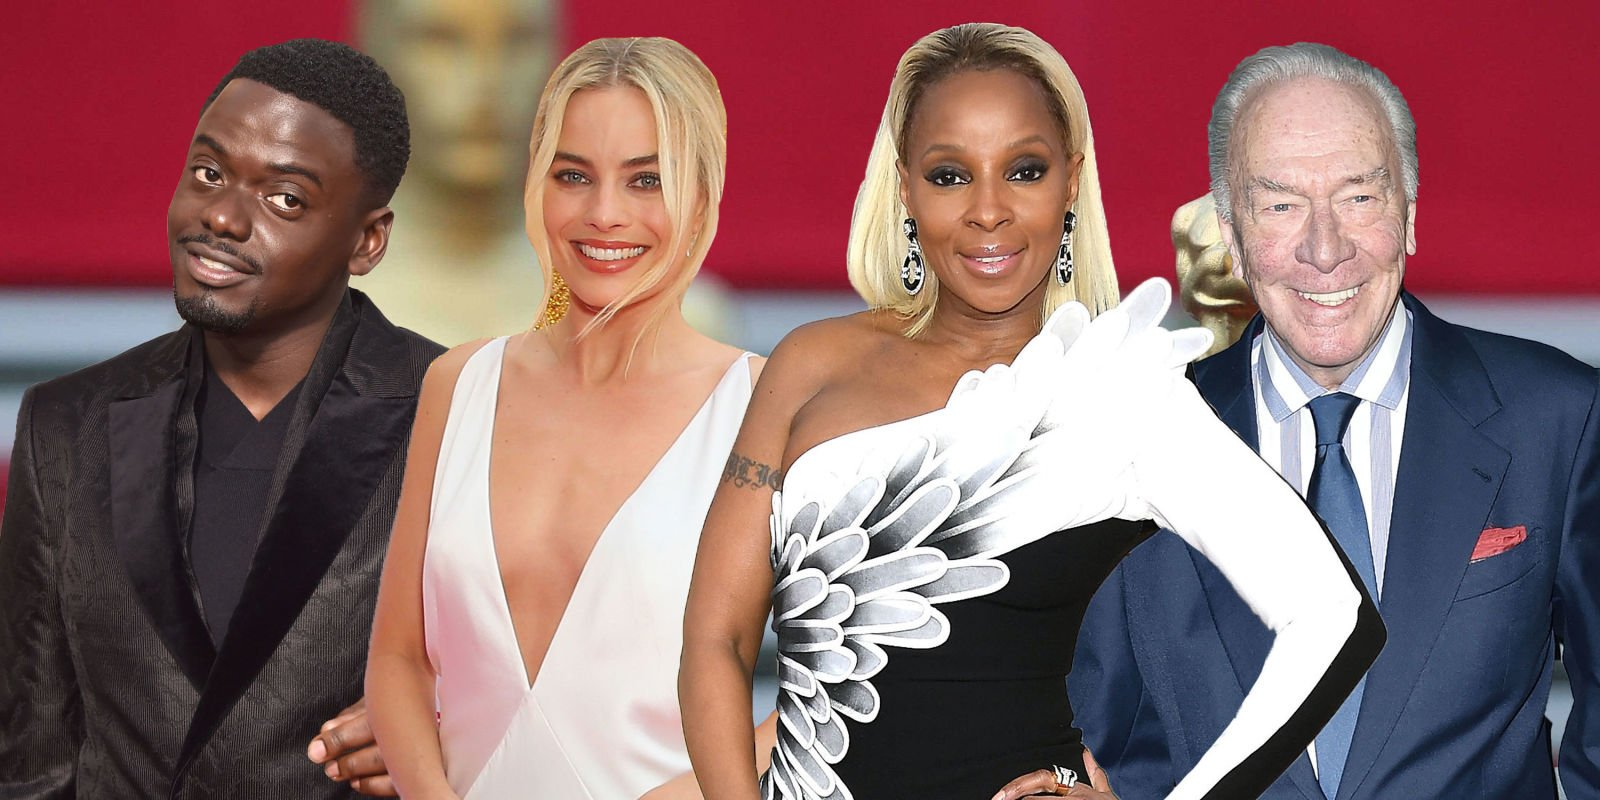 Oscars 2018 winners in full: Who triumphed at the 90th Academy Awards?